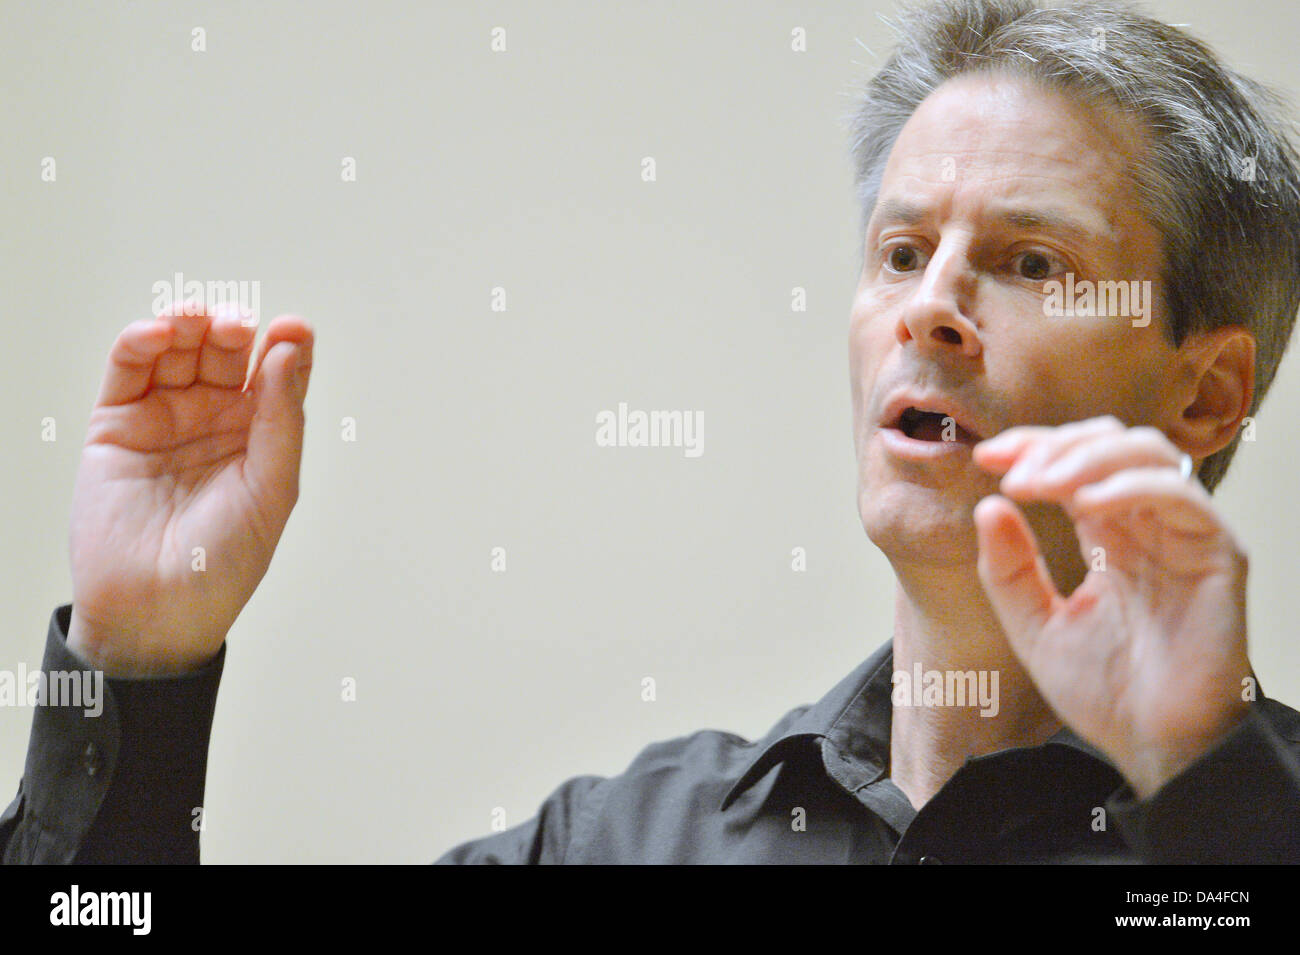 Composer and conductor Steven Mercurio is seen at rehearsal of his A Grateful Tail Symphony during the 9th International - Stock Image